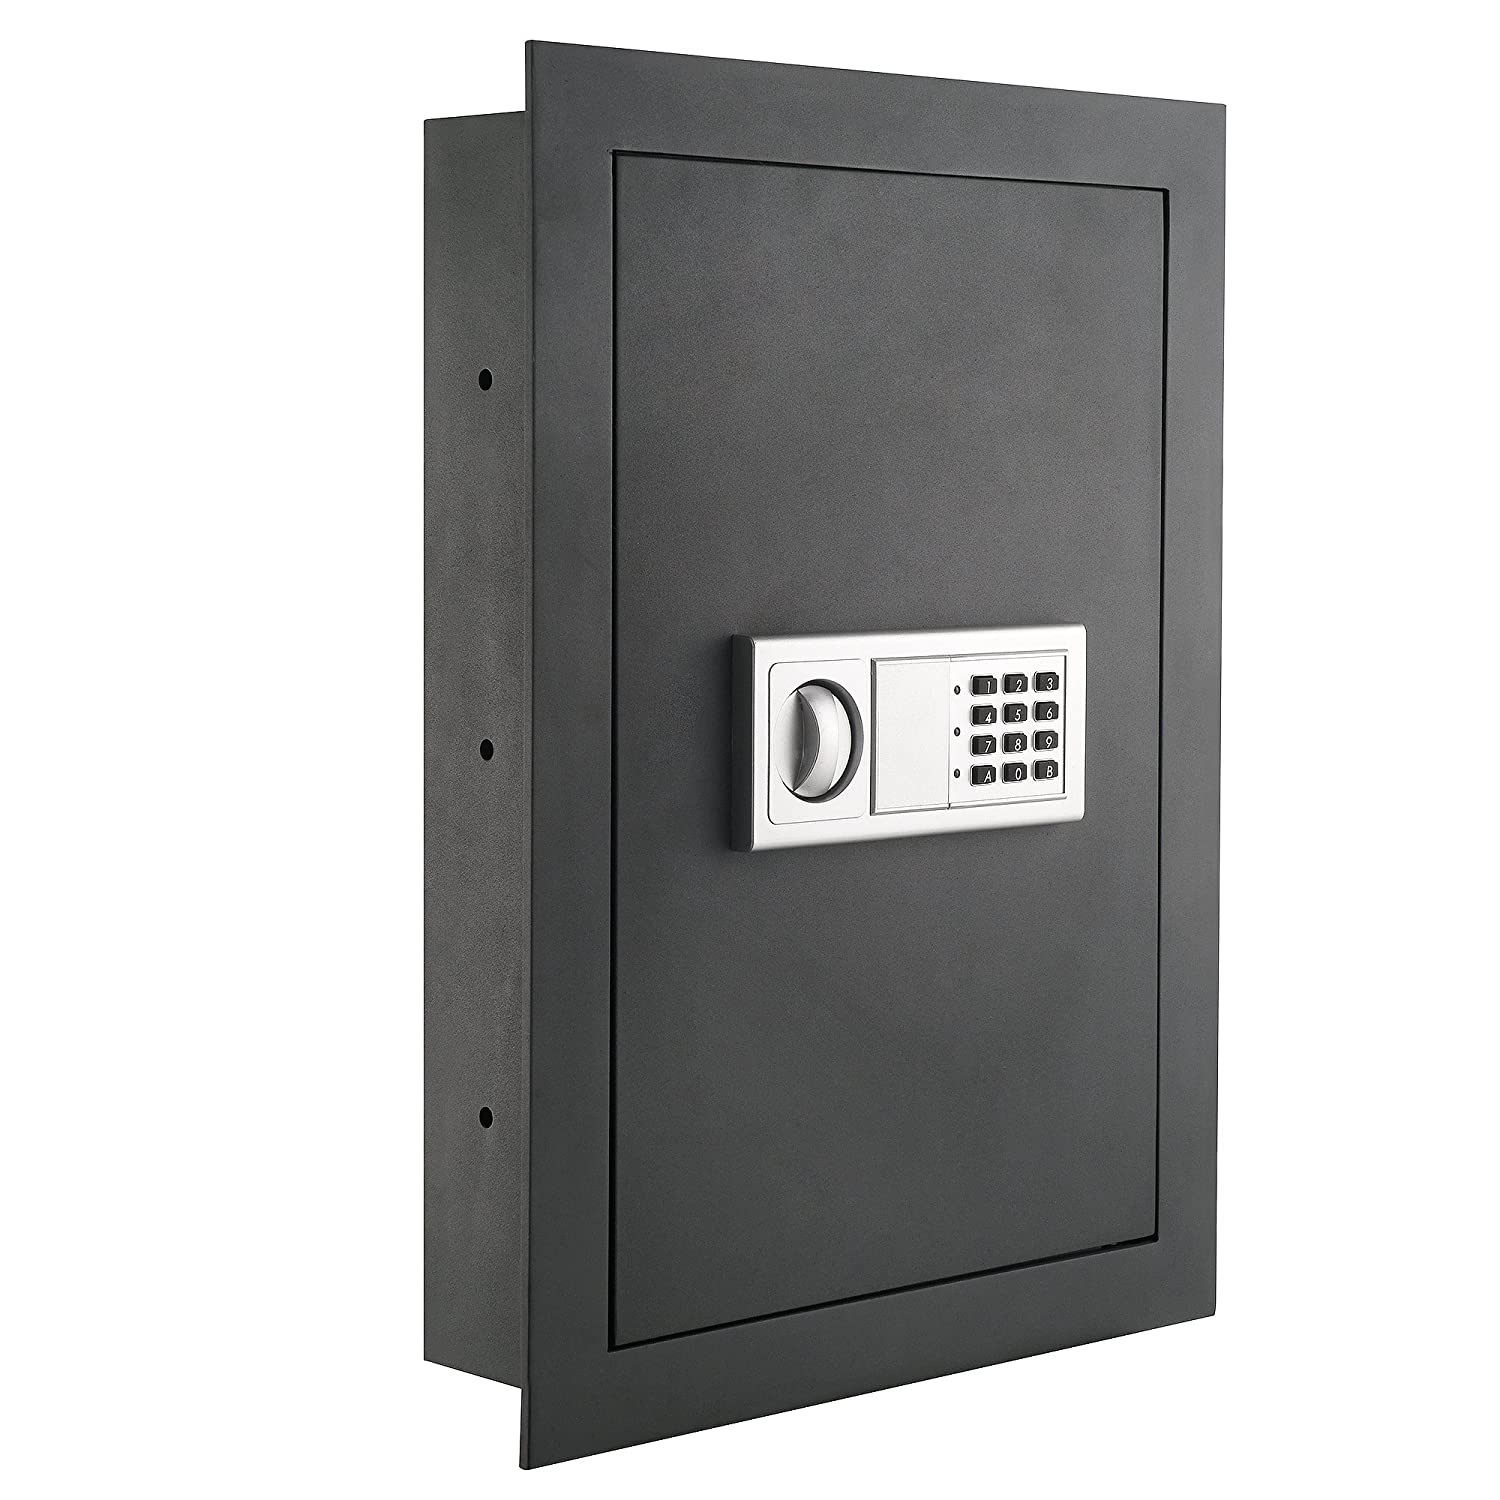 8. Paragon Lock & Safe 7725 Flat Electronic Wall Safe